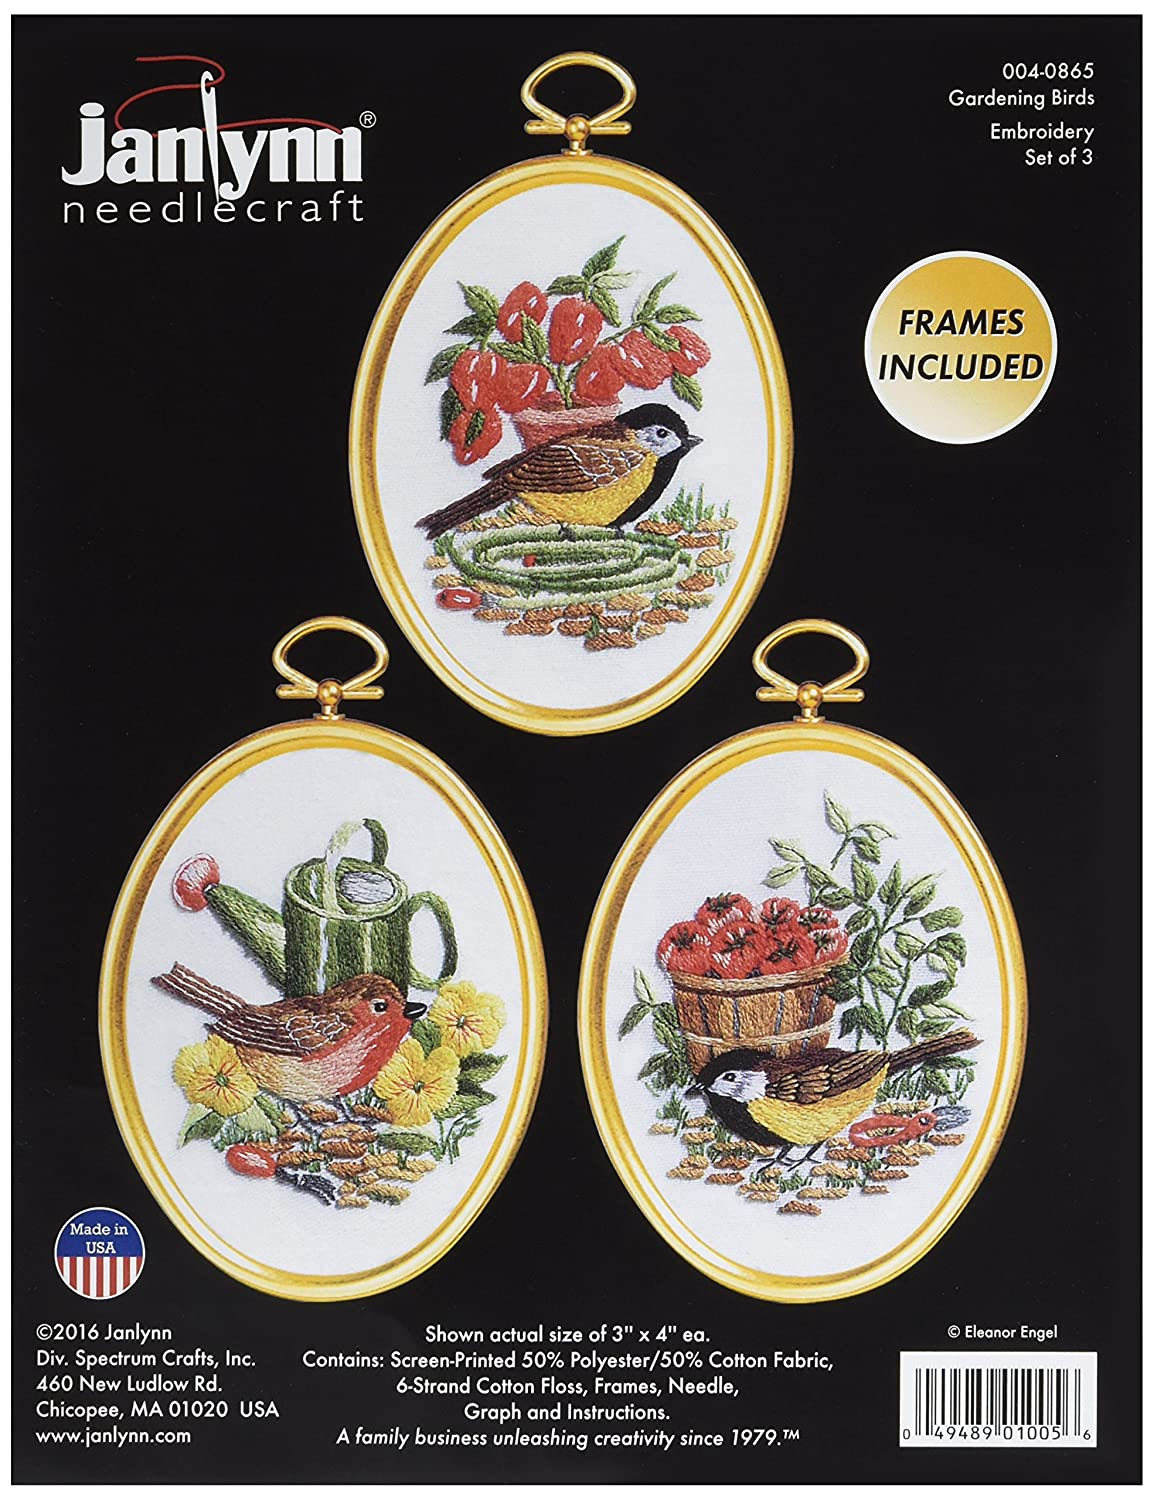 Janlynn 004-0865 Gardening Birds Embroidery Kit Set of 3 3 x 4 Stitched in Floss